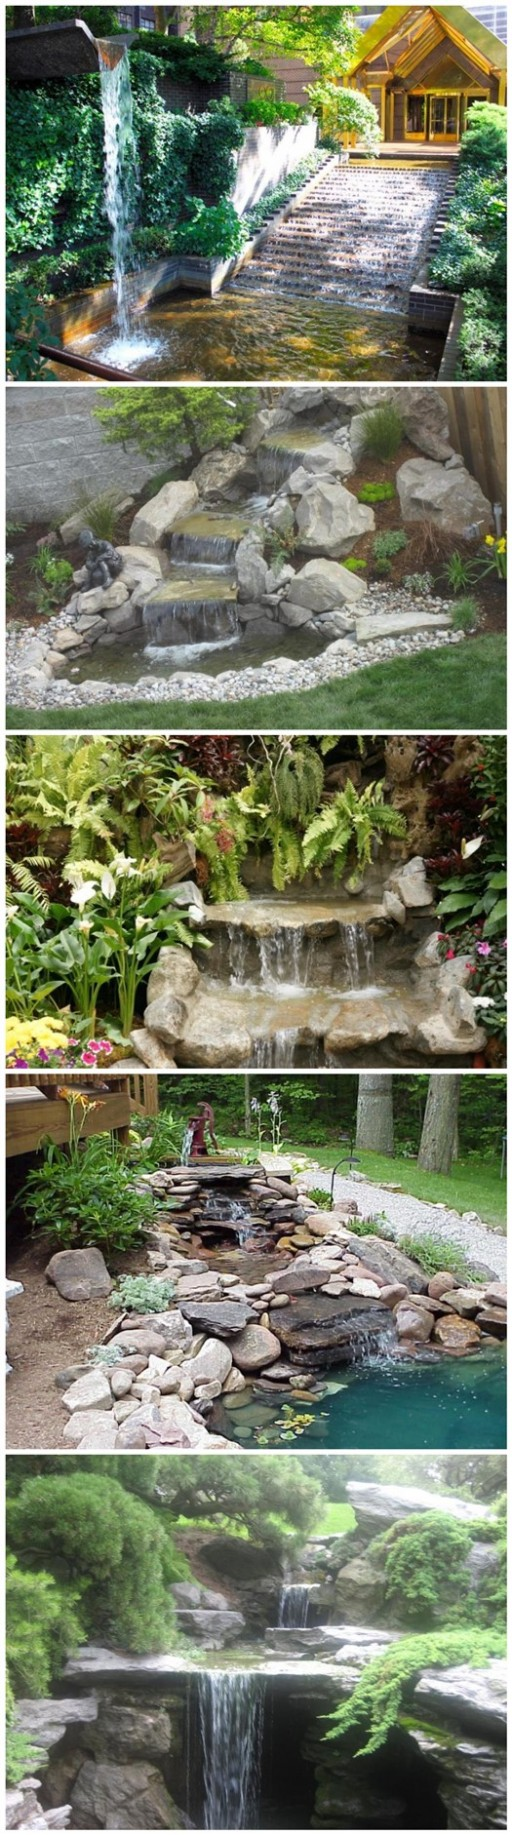 How to build a garden waterfall pond diy tag for Diy ponds and waterfalls